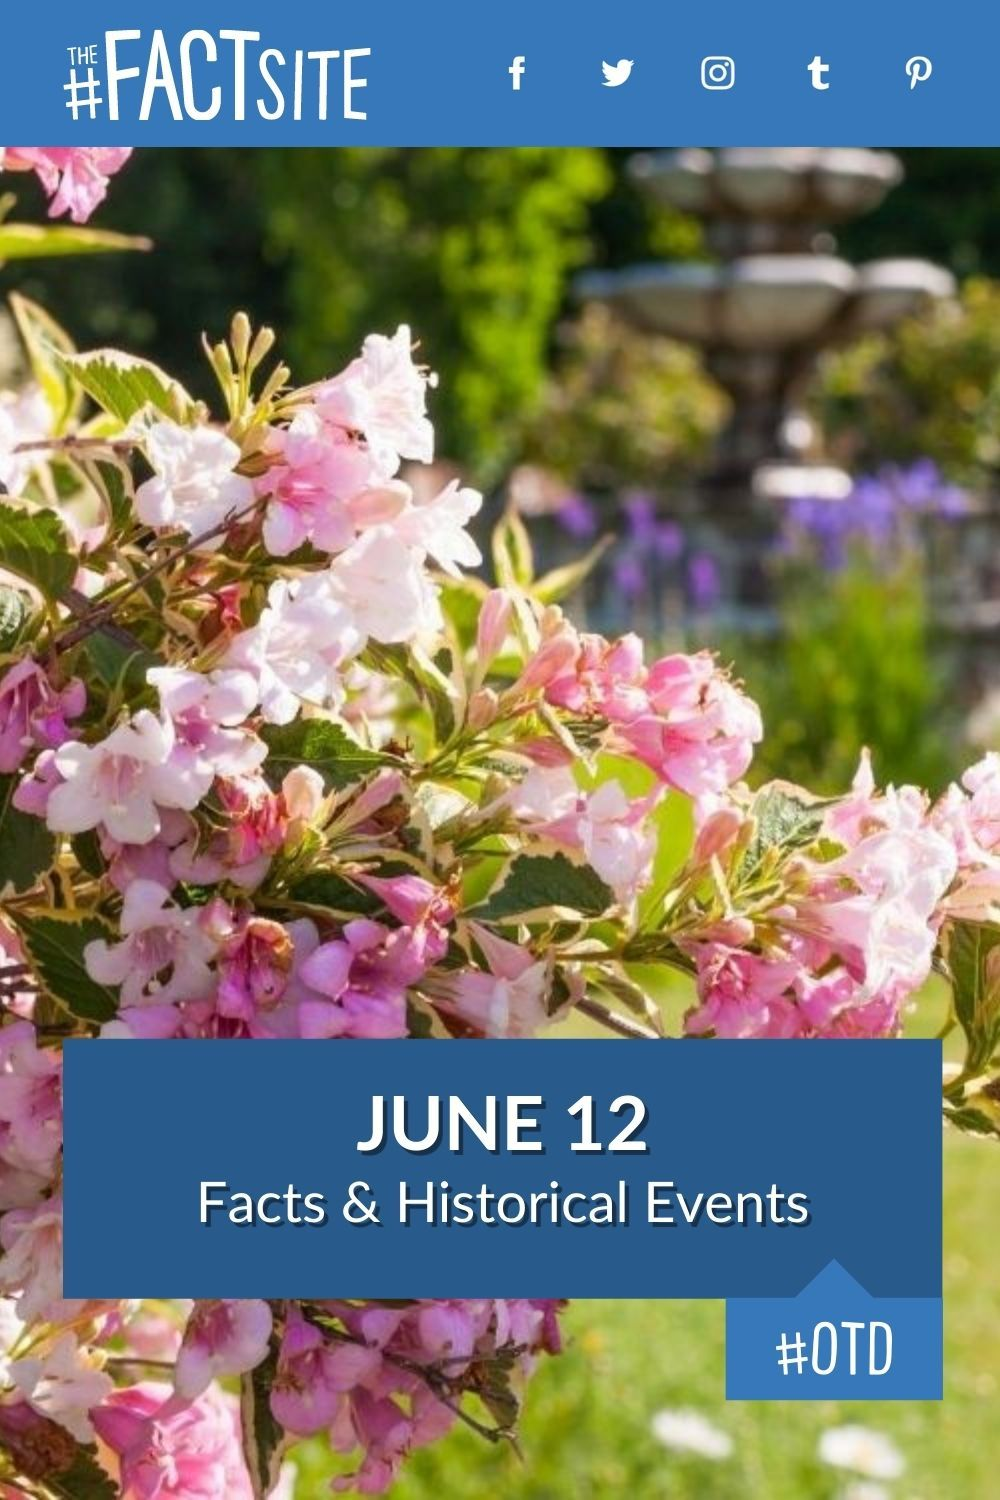 Facts & Historic Events That Happened on June 12